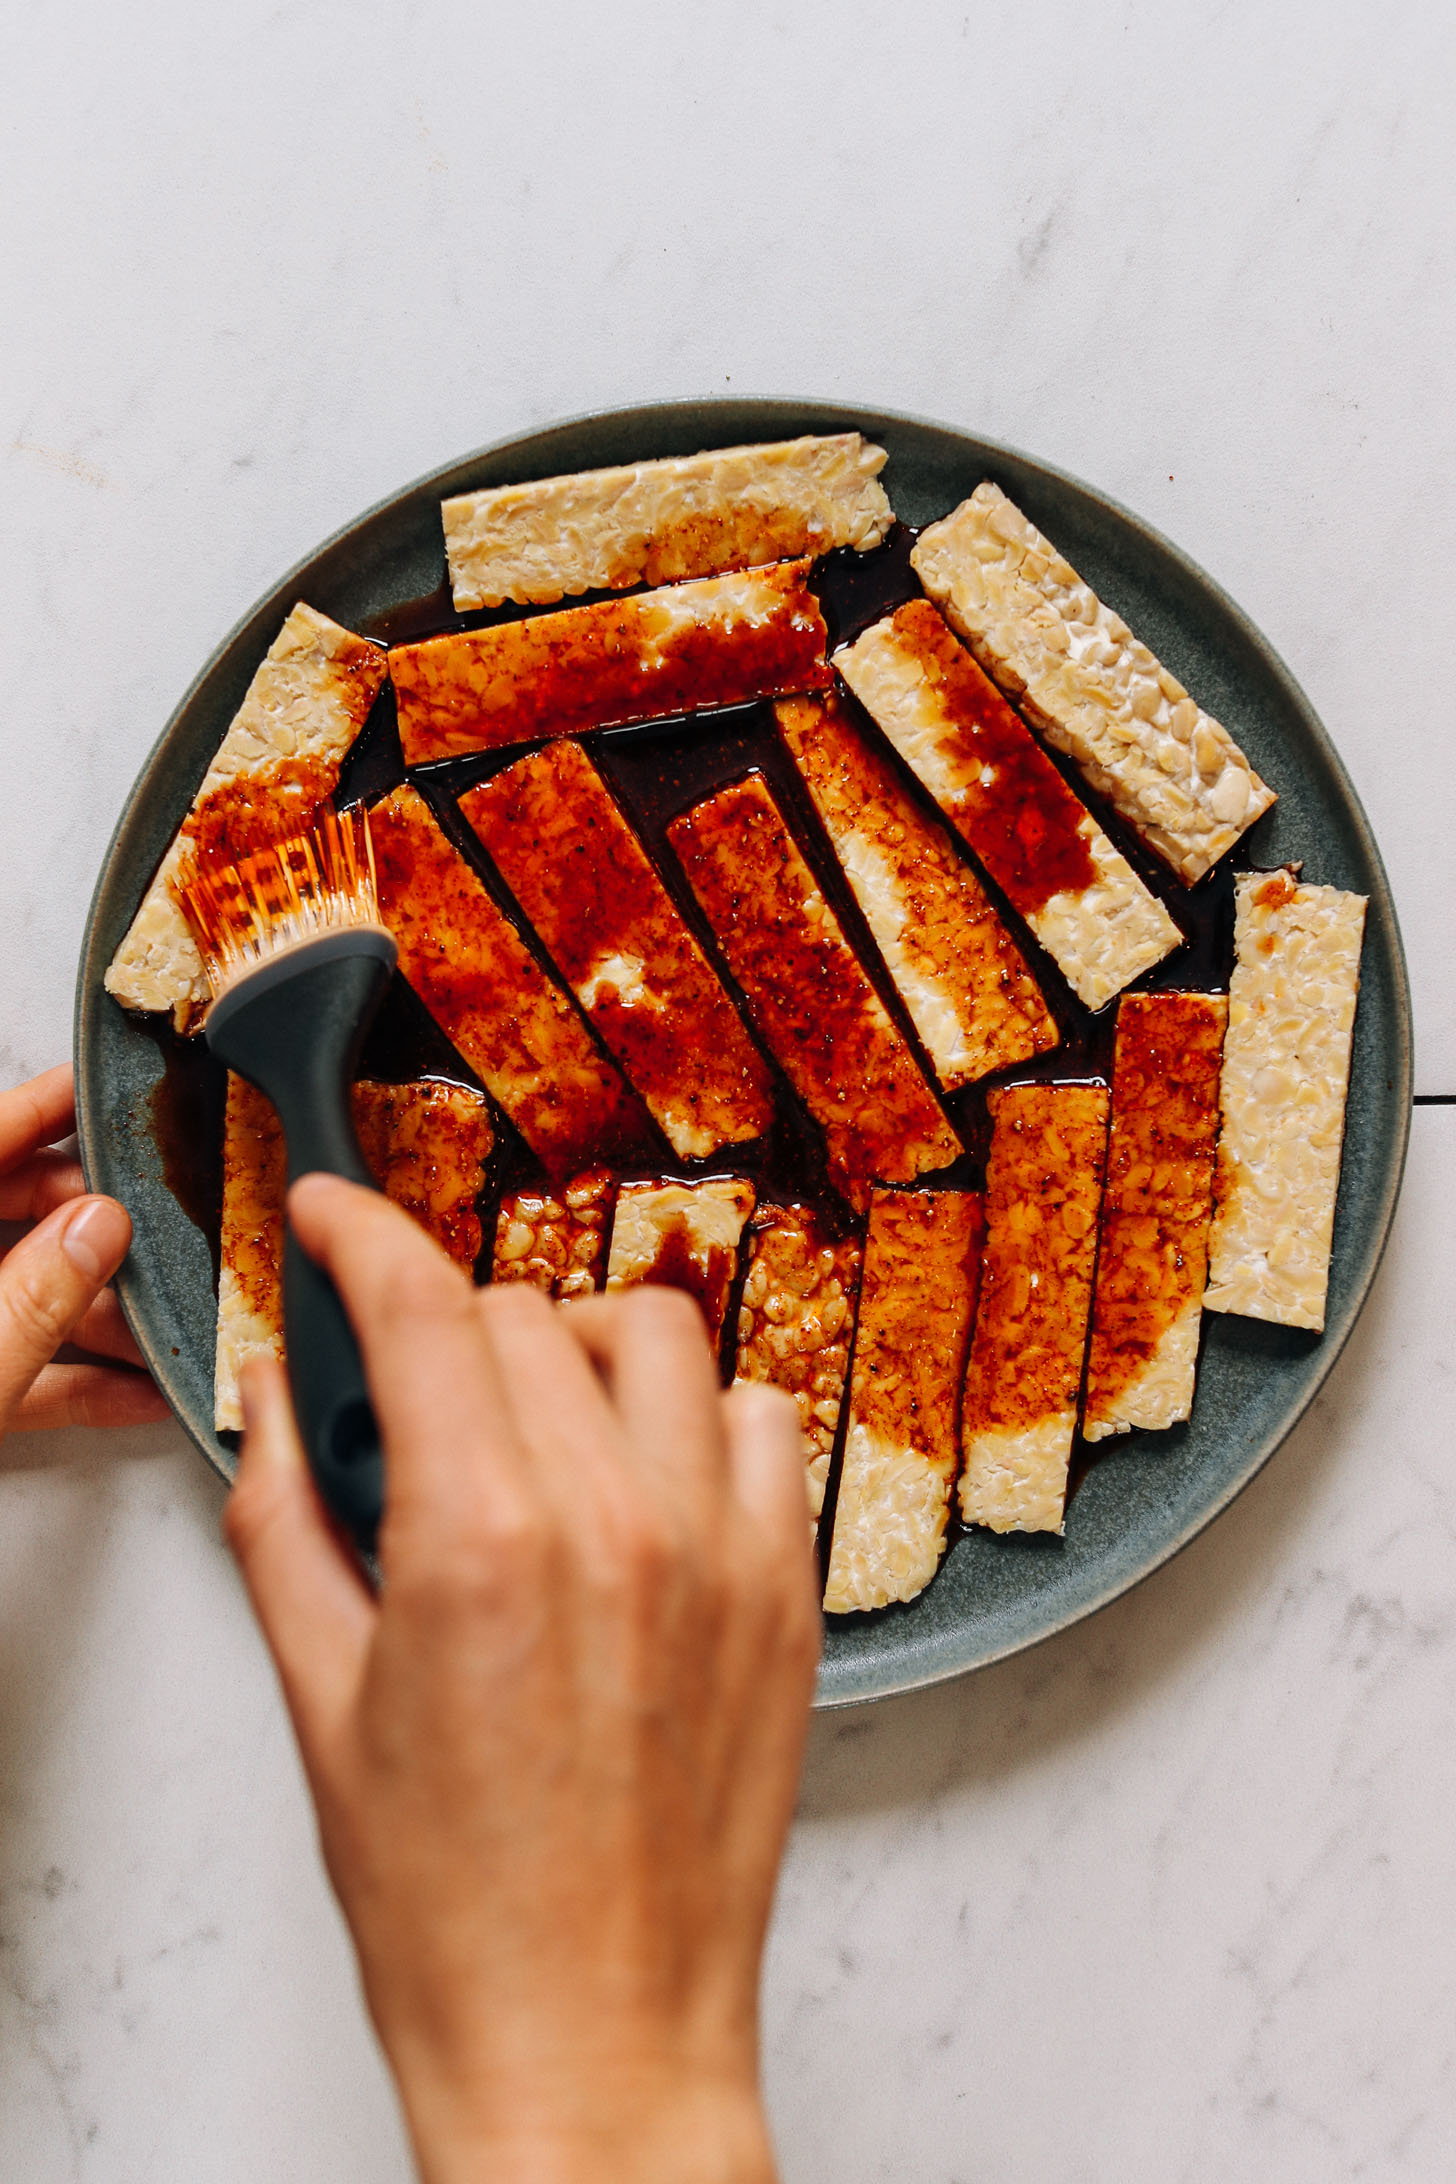 Using a pastry brush to spread marinade on tempeh bacon